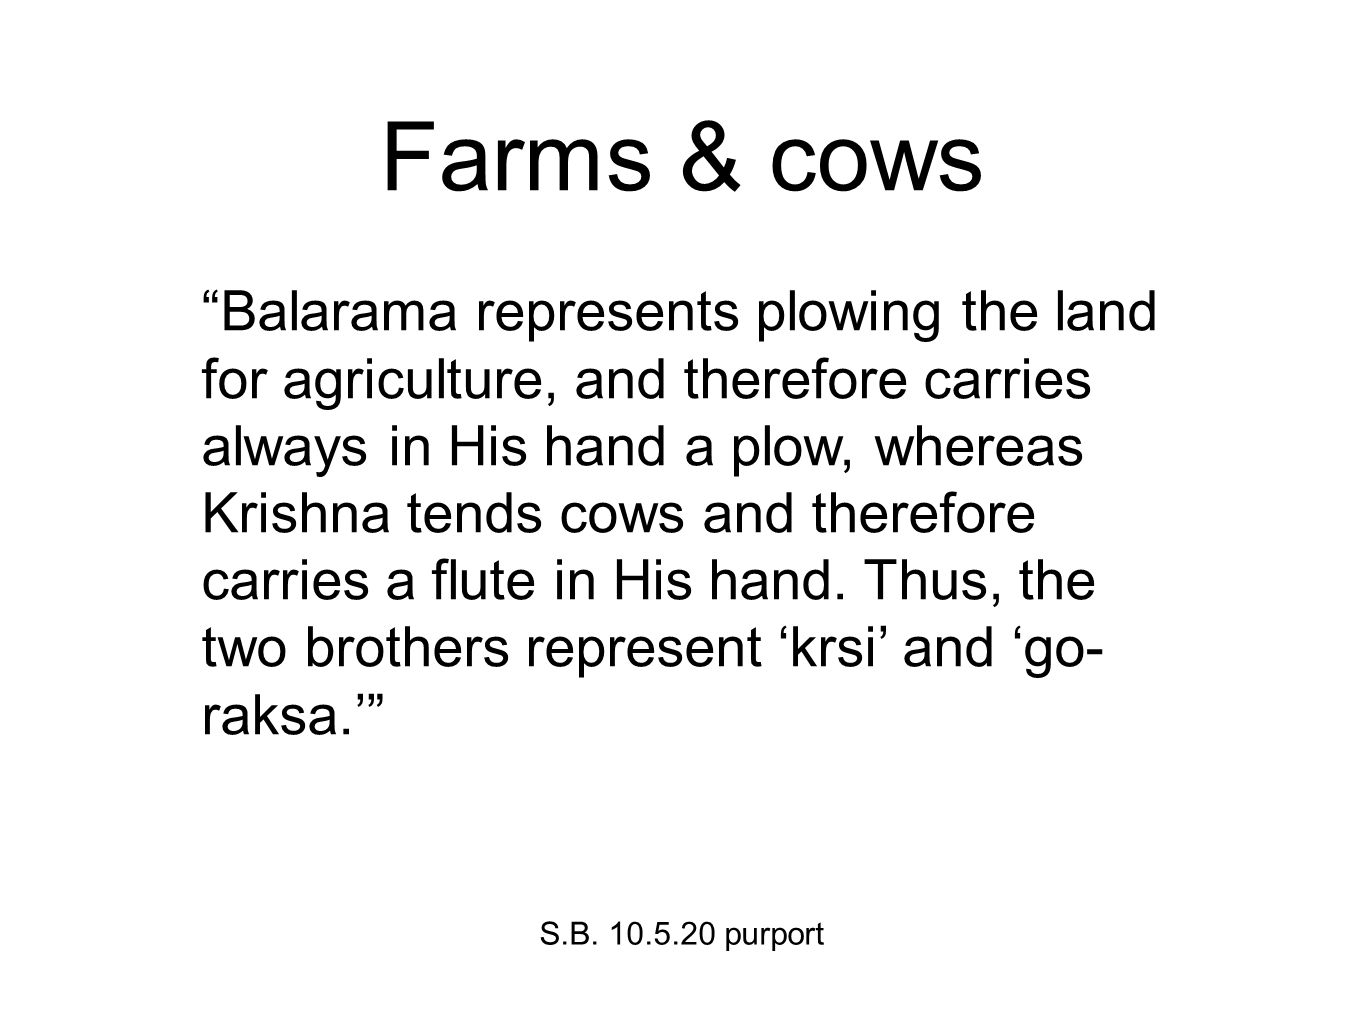 Farms & cows Balarama represents plowing the land for agriculture, and therefore carries always in His hand a plow, whereas Krishna tends cows and therefore carries a flute in His hand.